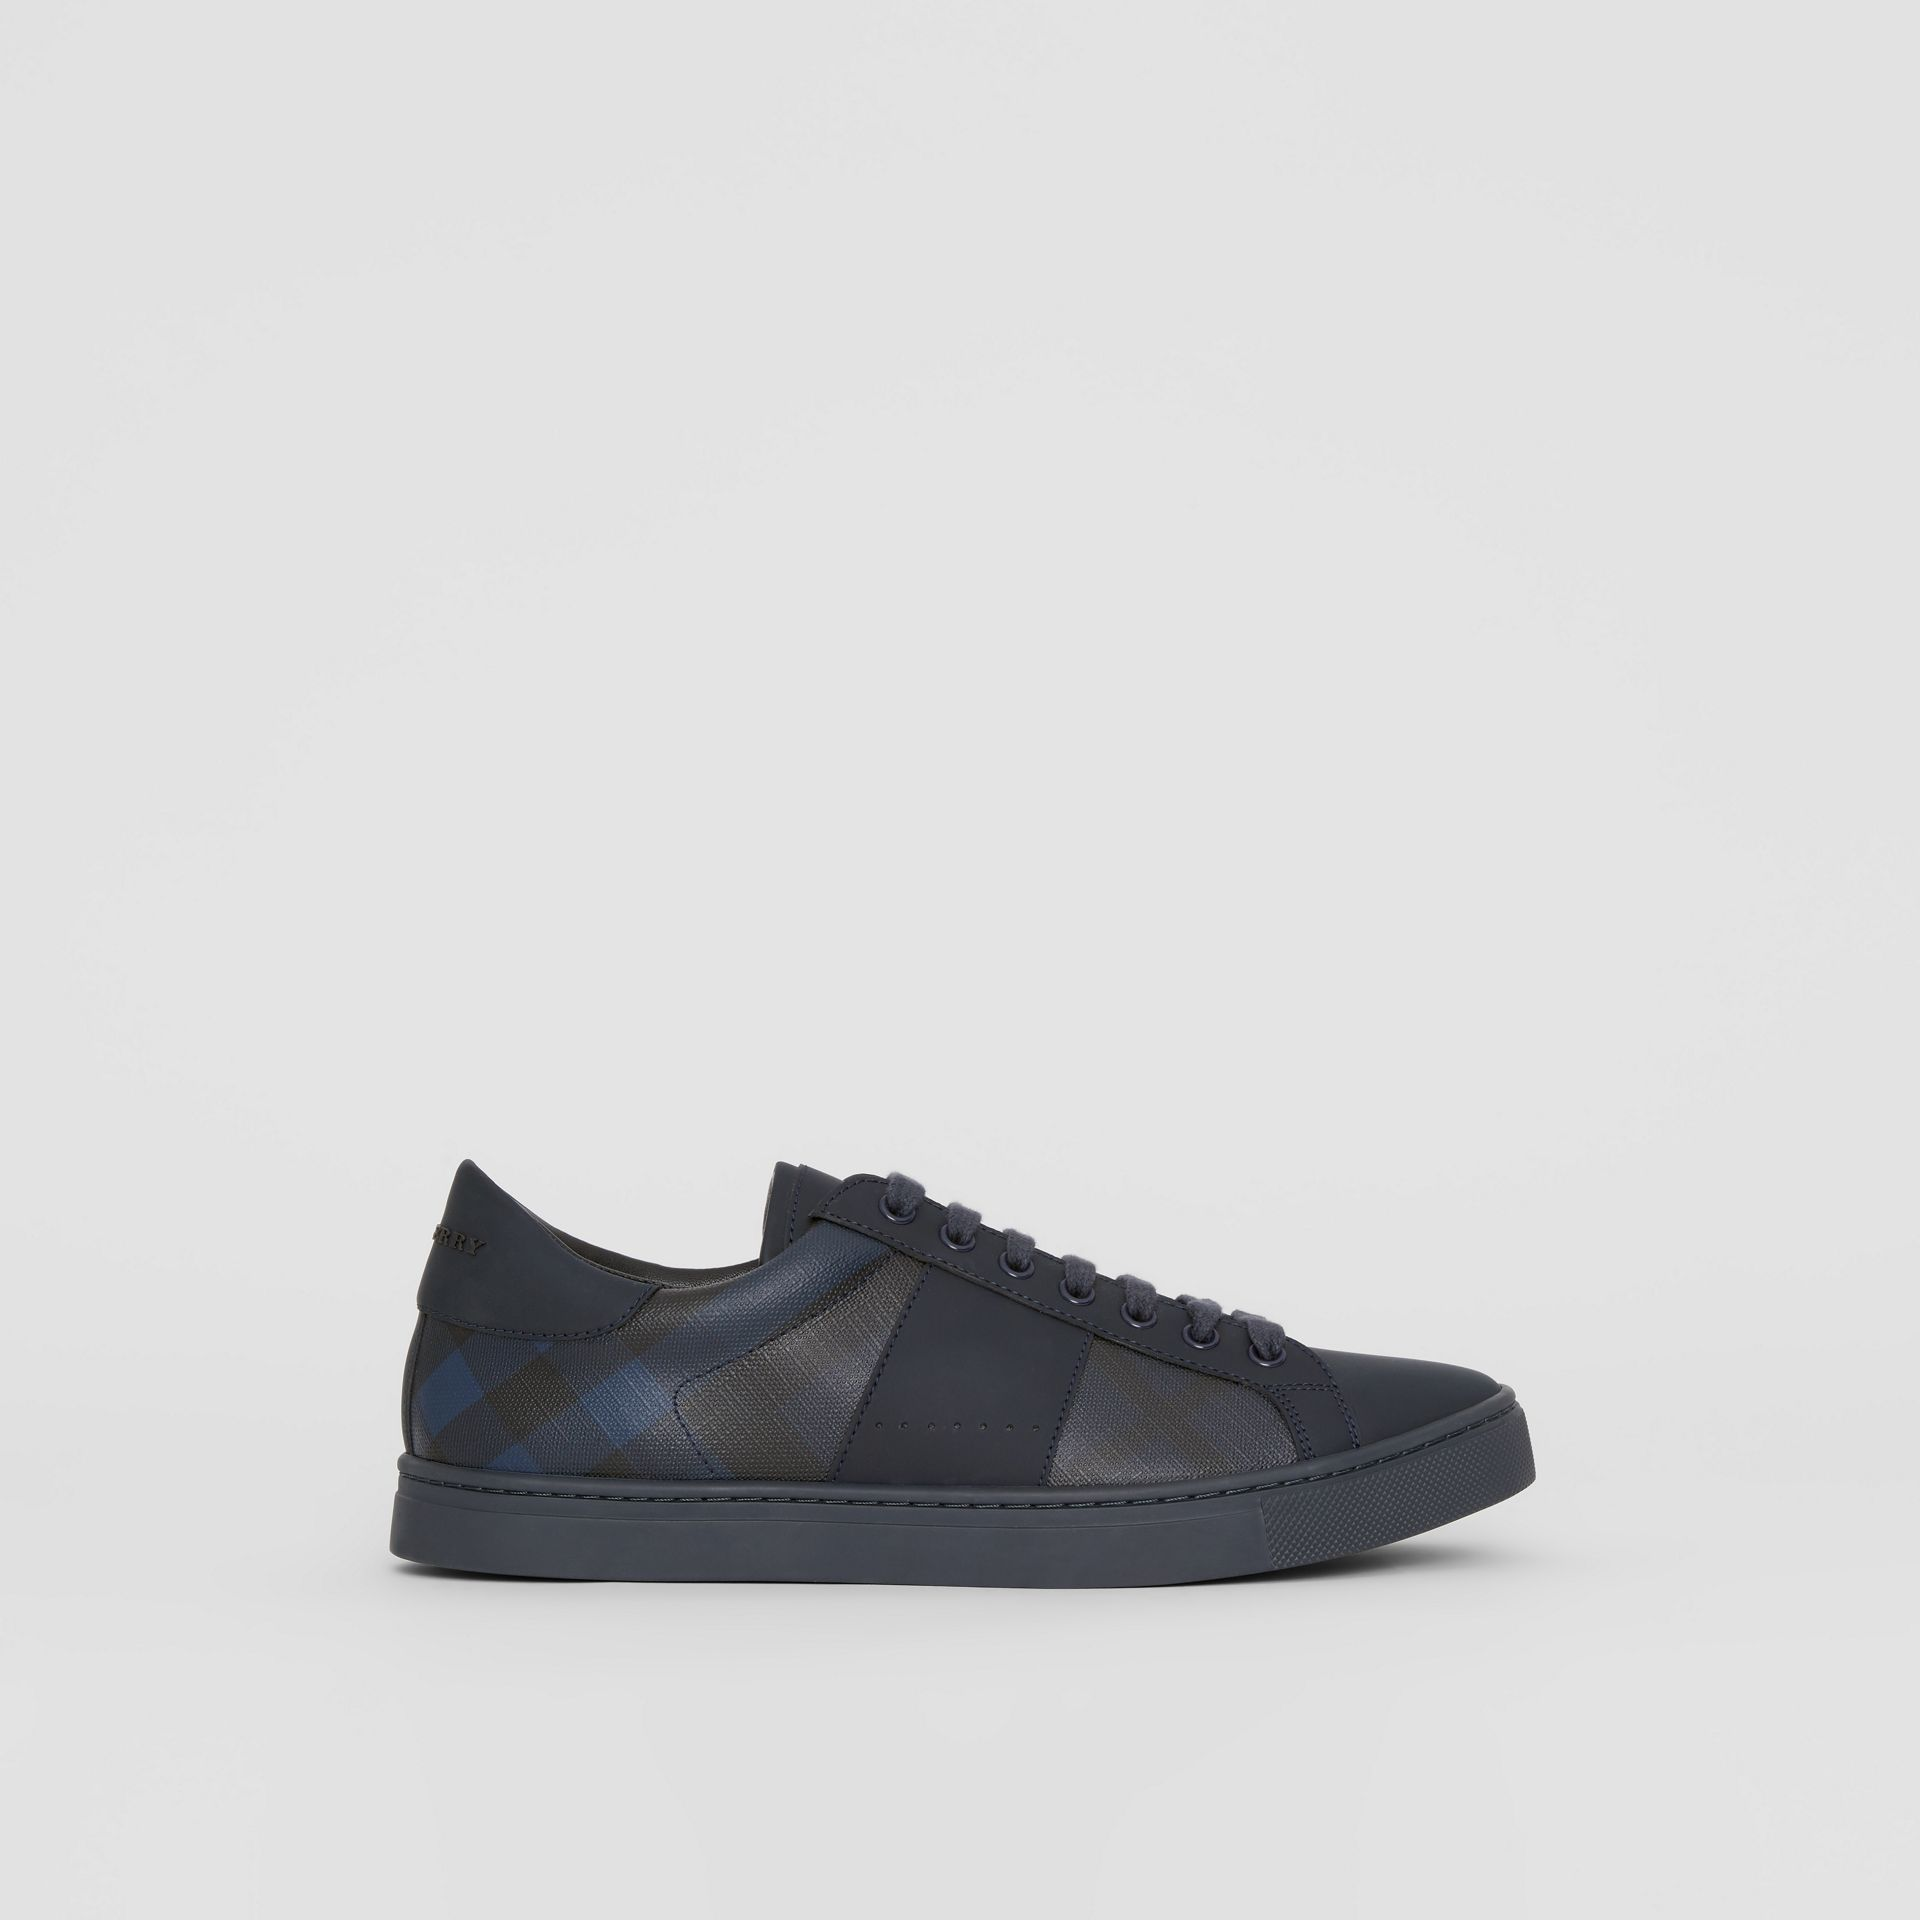 London Check and Leather Sneakers in Navy - Men | Burberry - gallery image 5